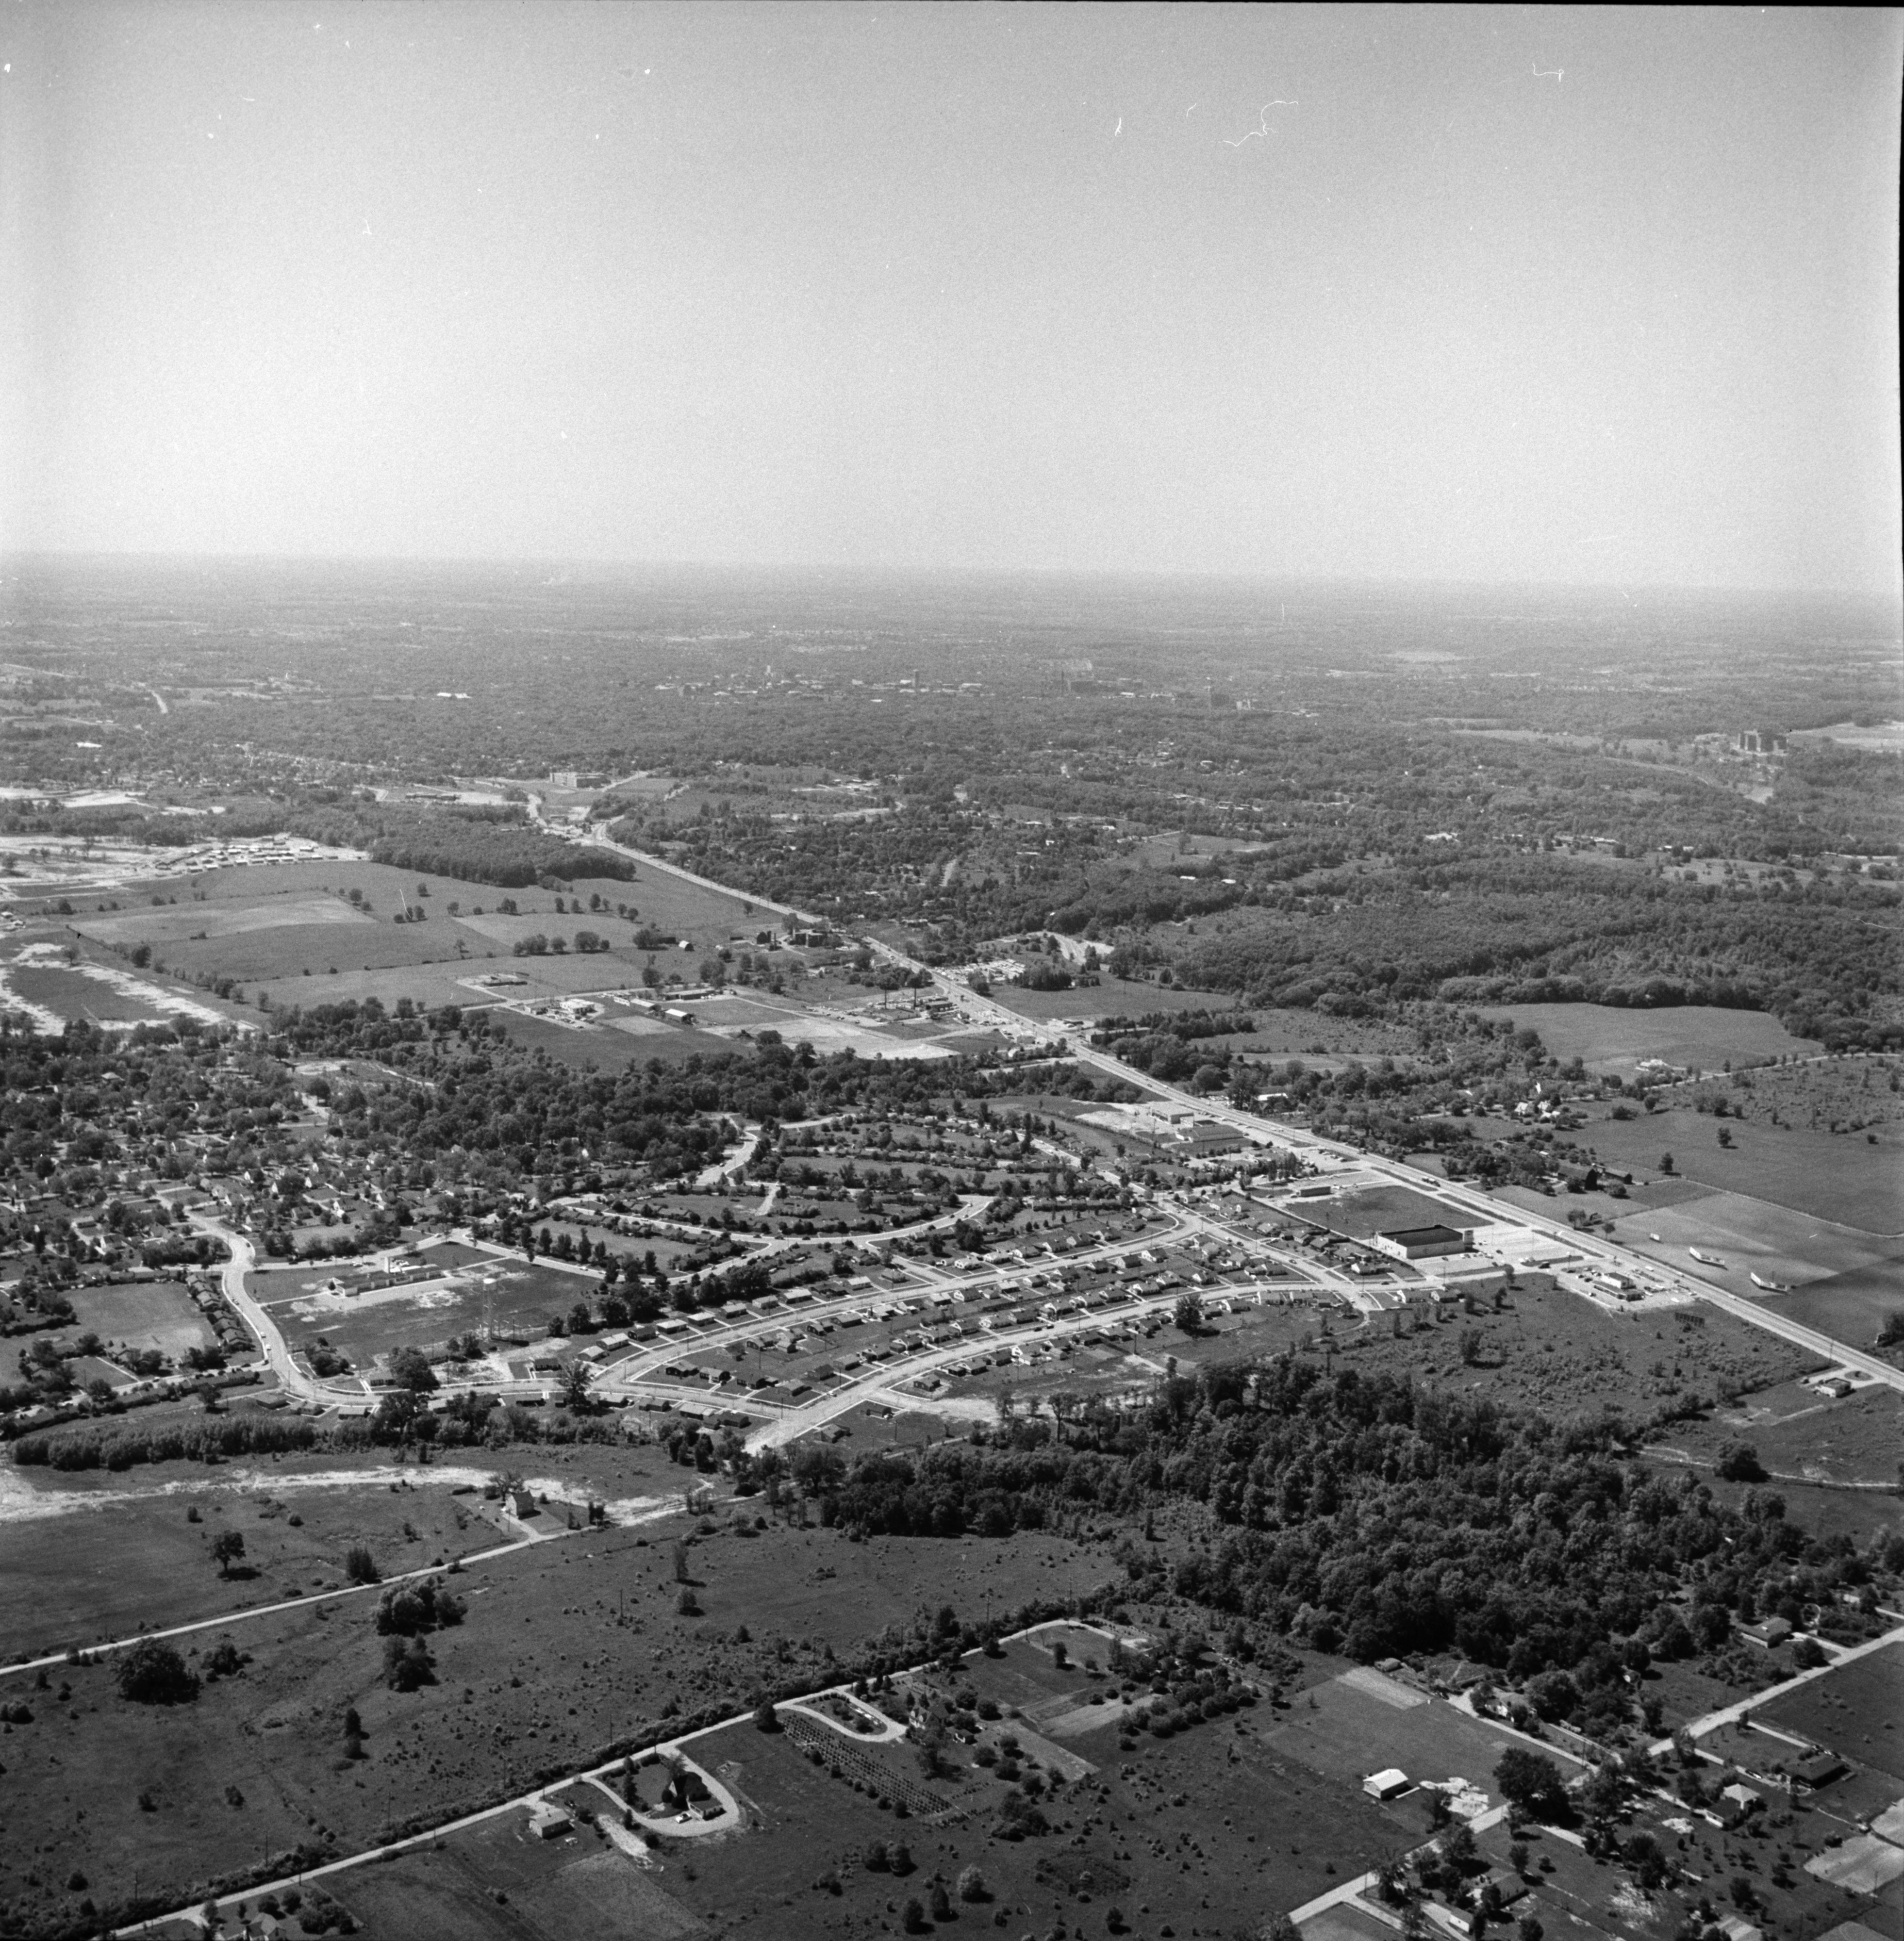 Aerial Photograph of Washtenaw Ave near Pittsfield Park Subdivision, July 1957 image